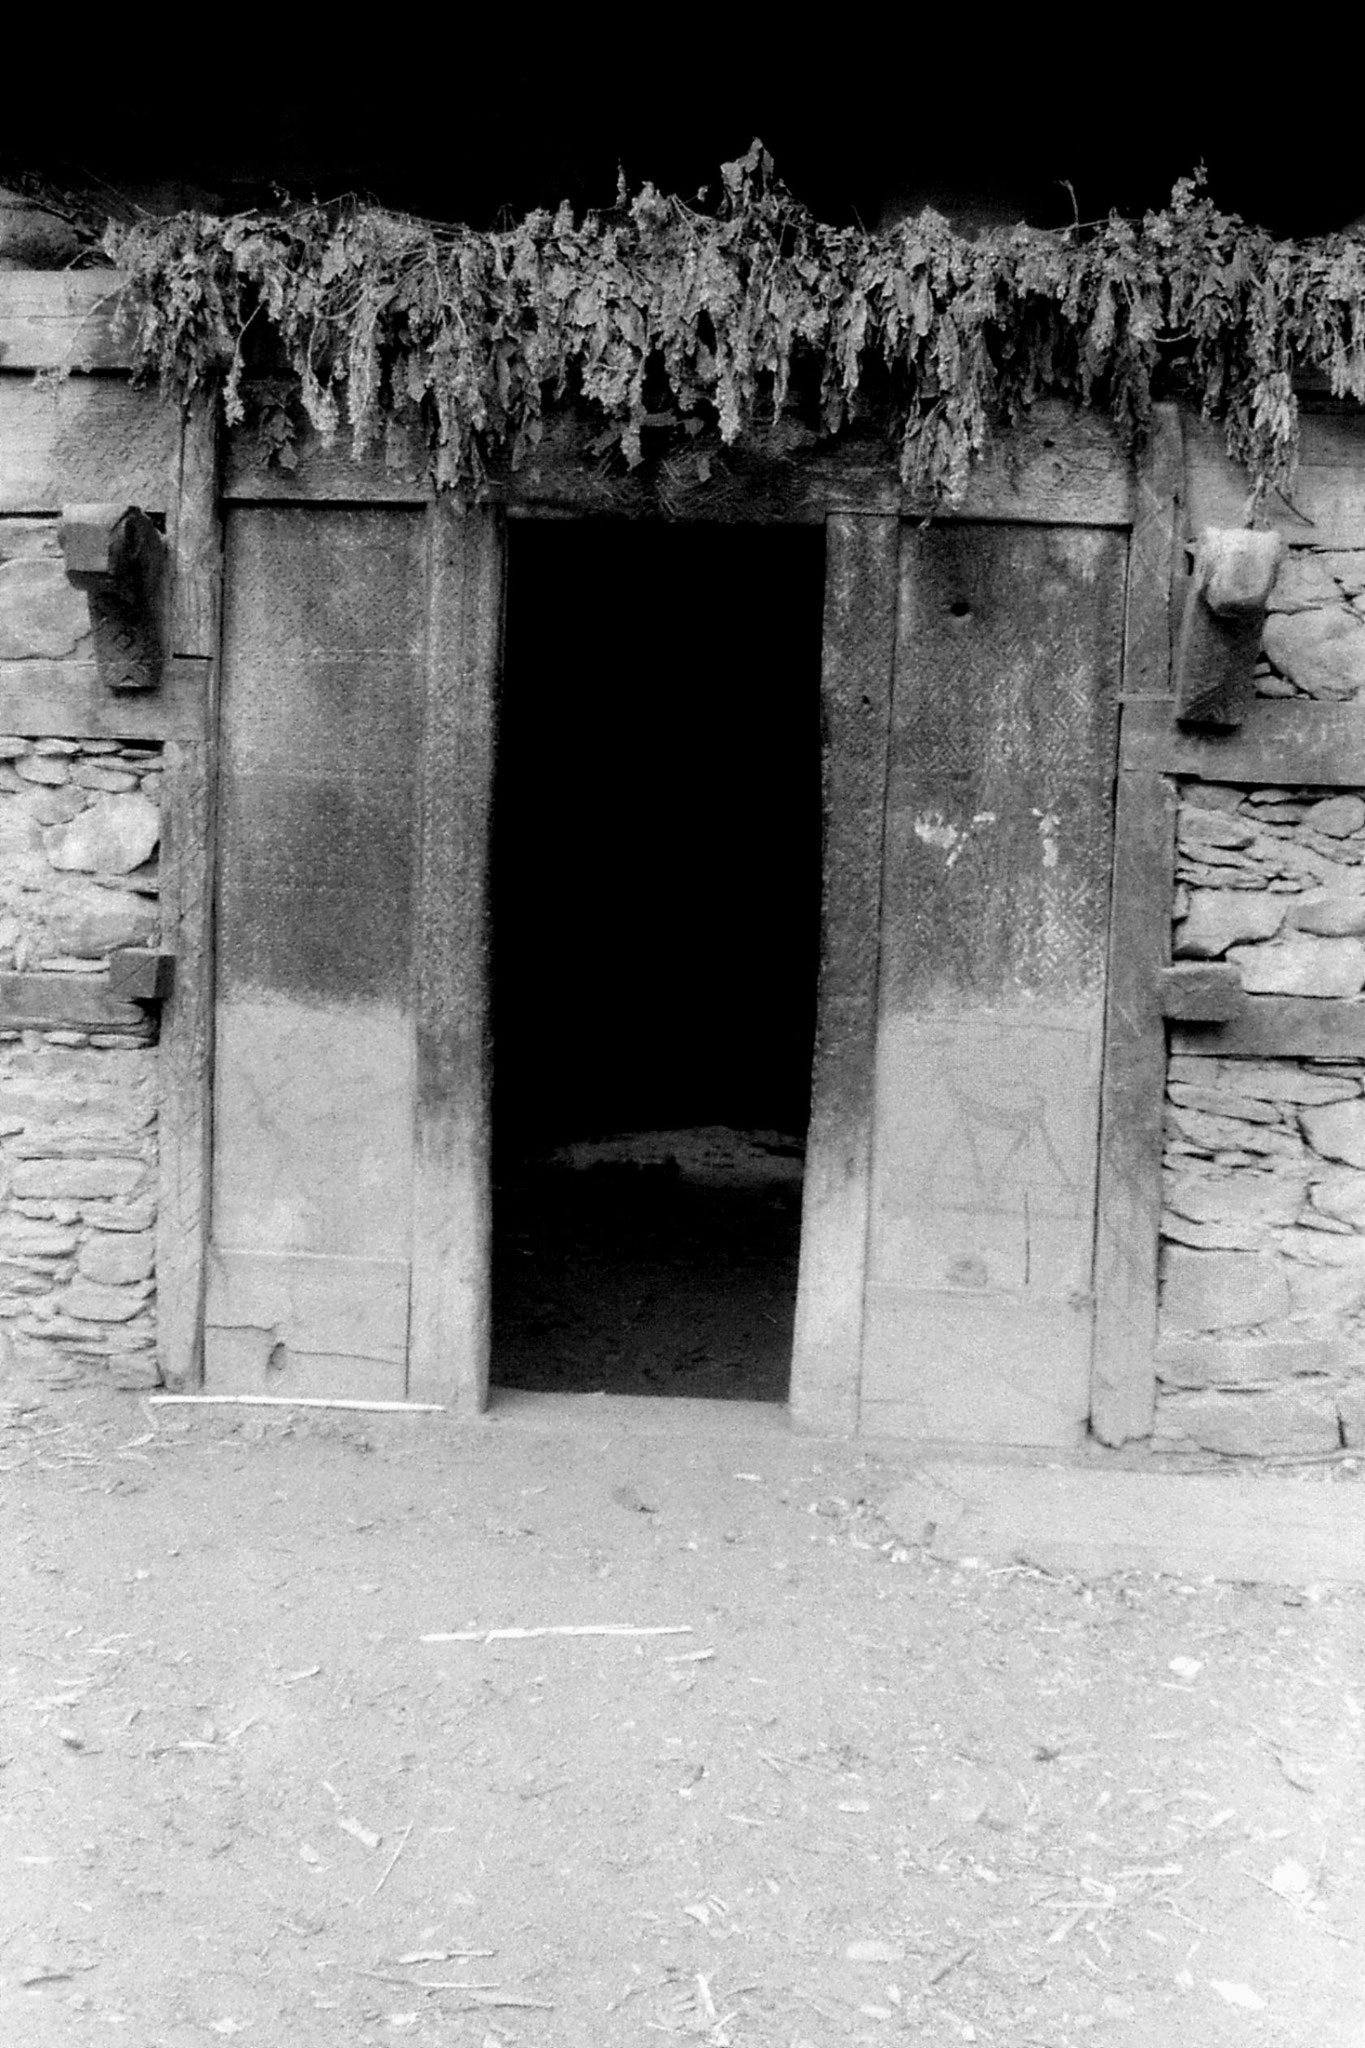 1/11/1989: 19: Kalash Valley, Bumburet, door of sacrifice hut